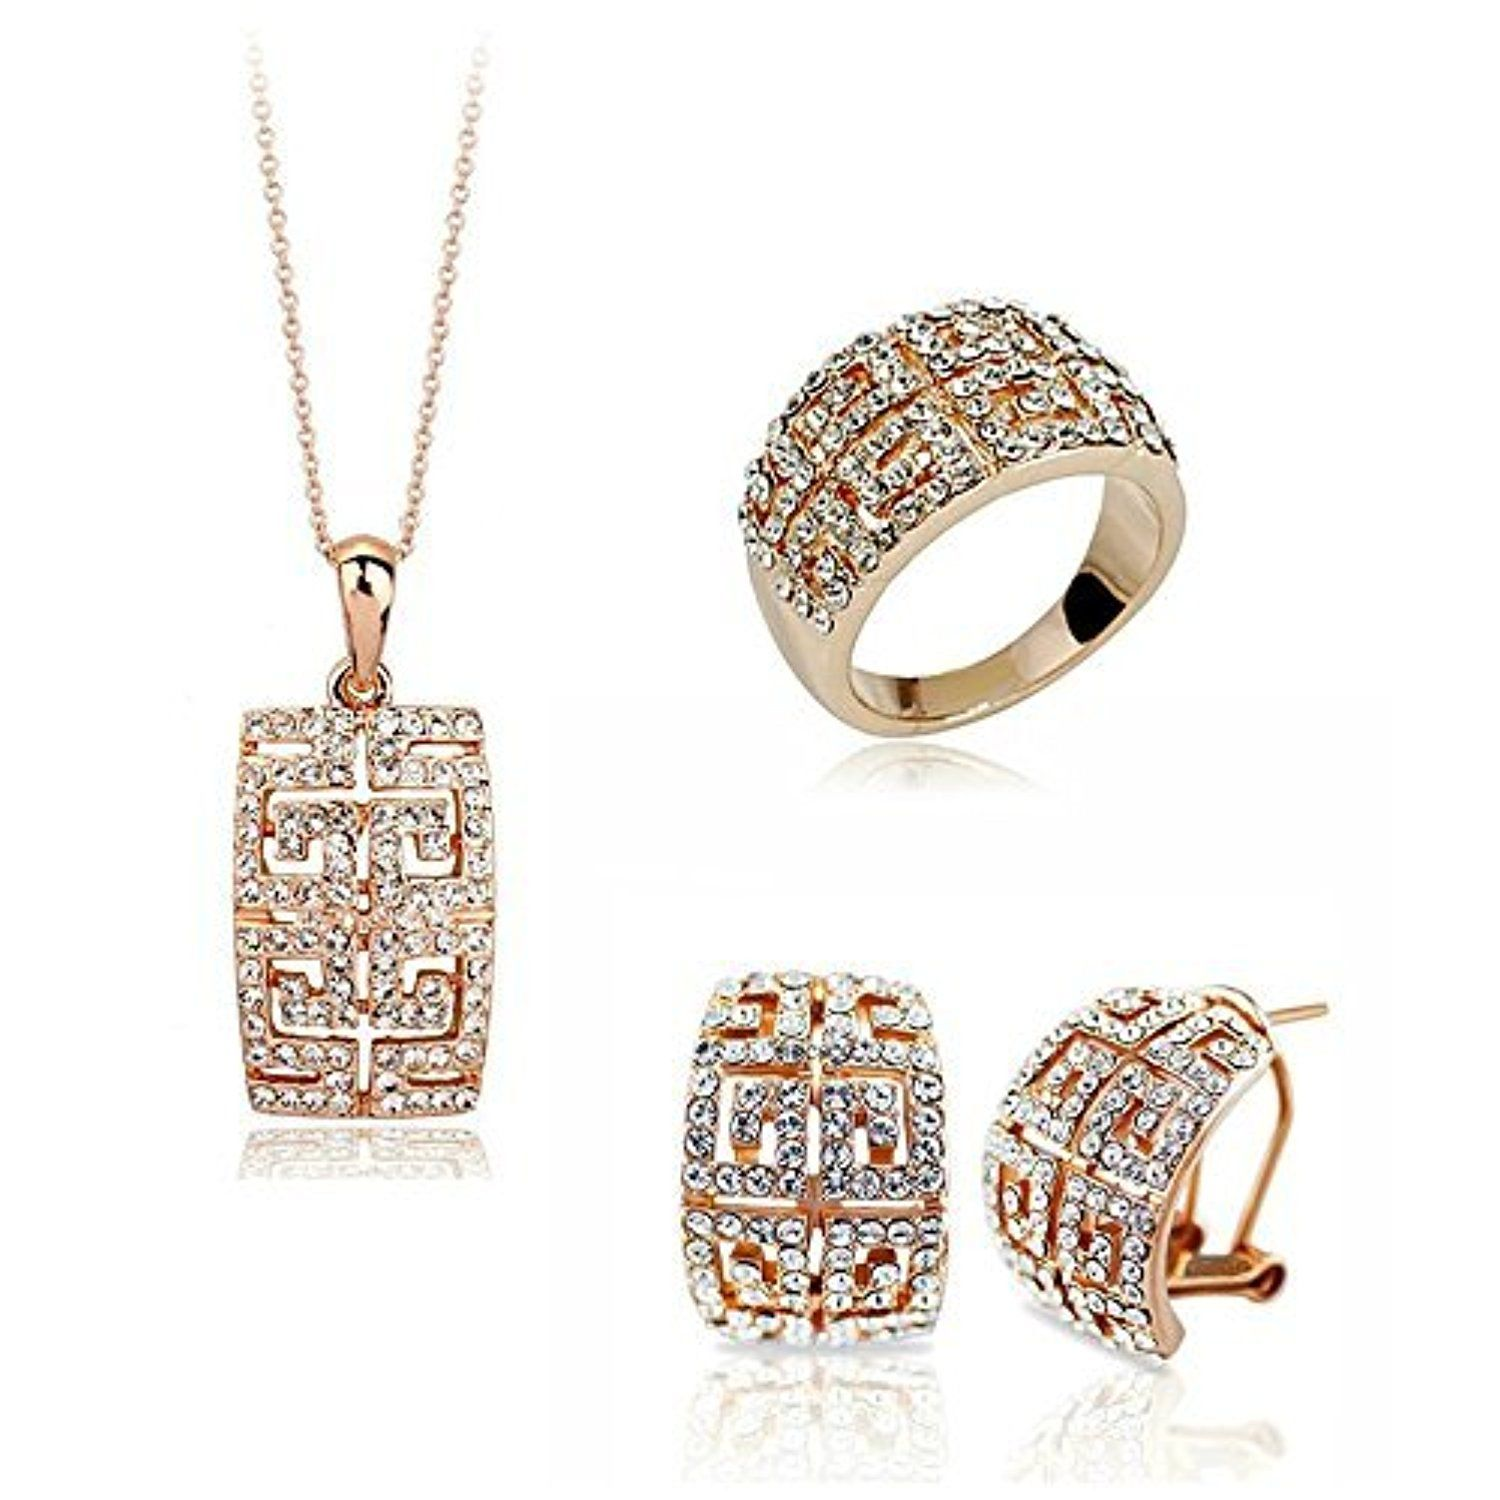 HSG Luxury Bride Wedding Jewelry Set Necklace Ring Earrings in Rose